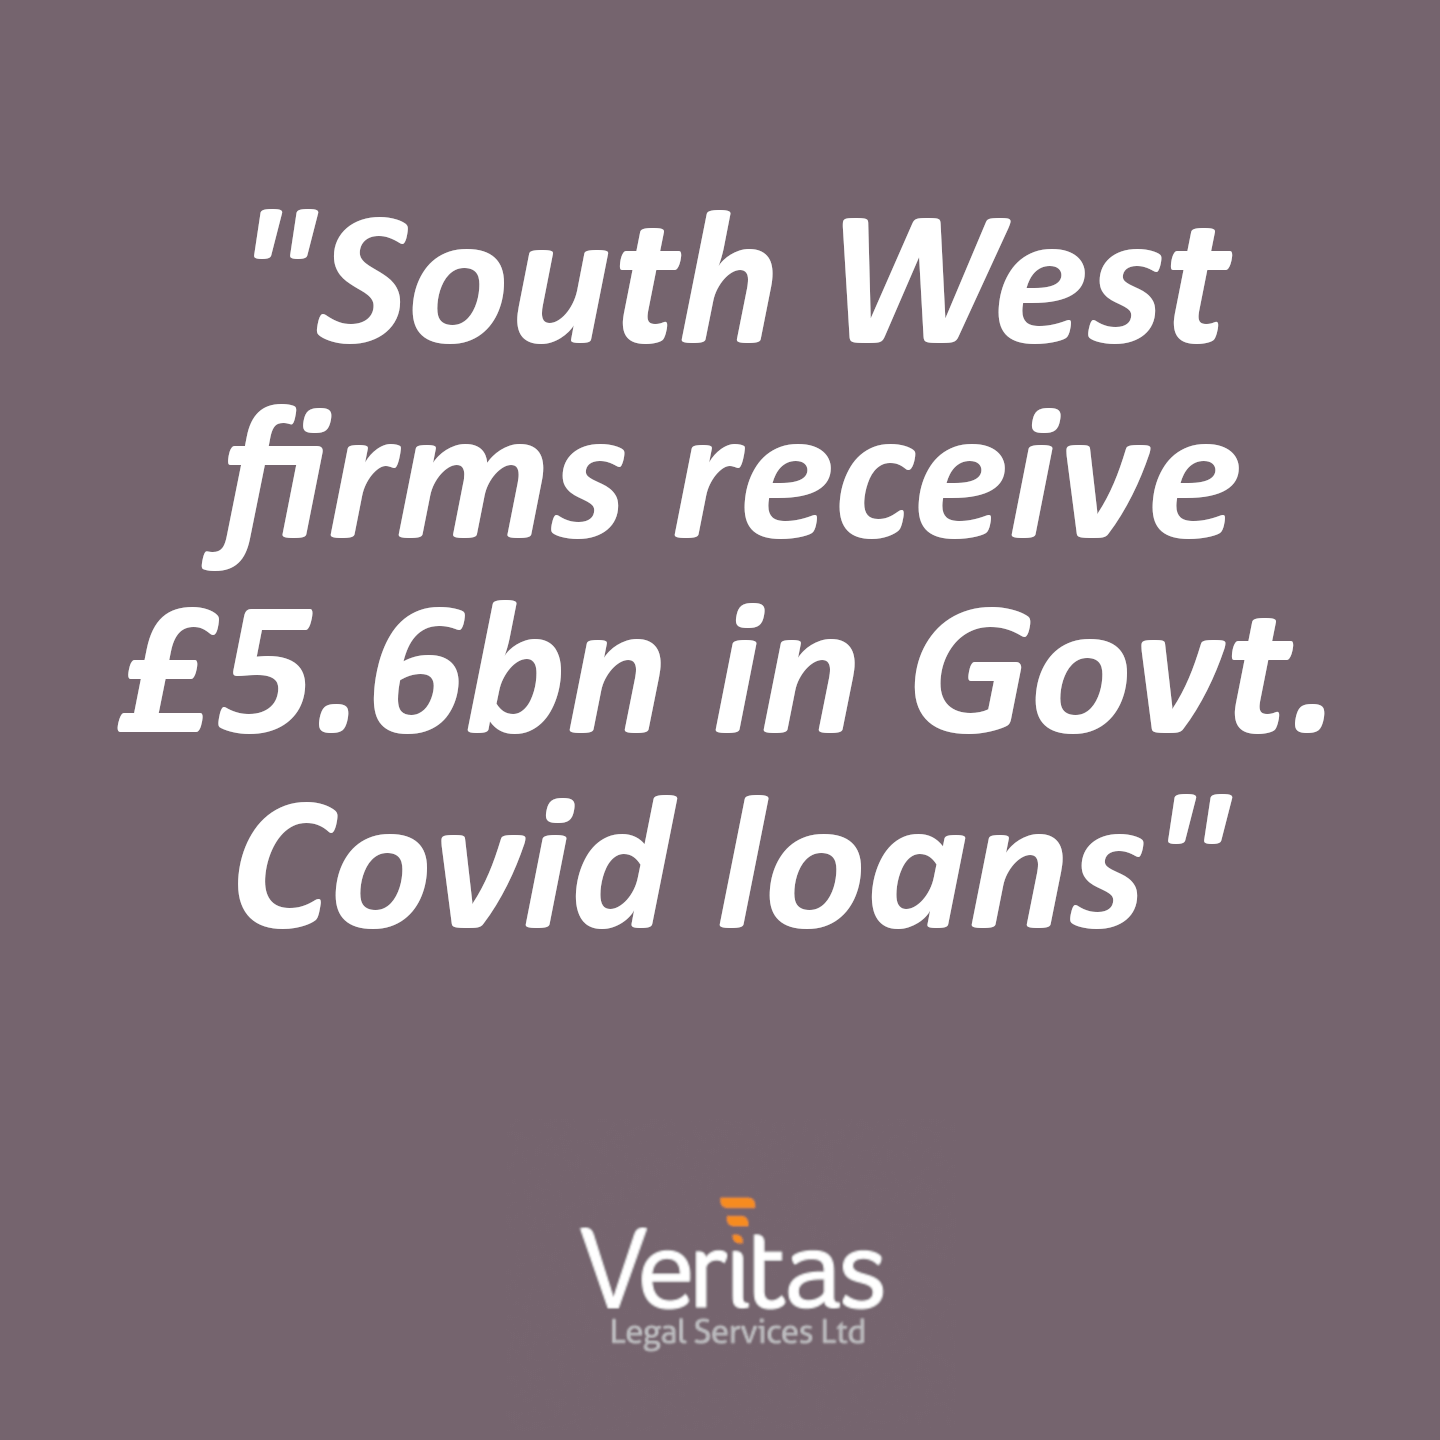 South West firms receive £5.6bn in Govt. Covid loans